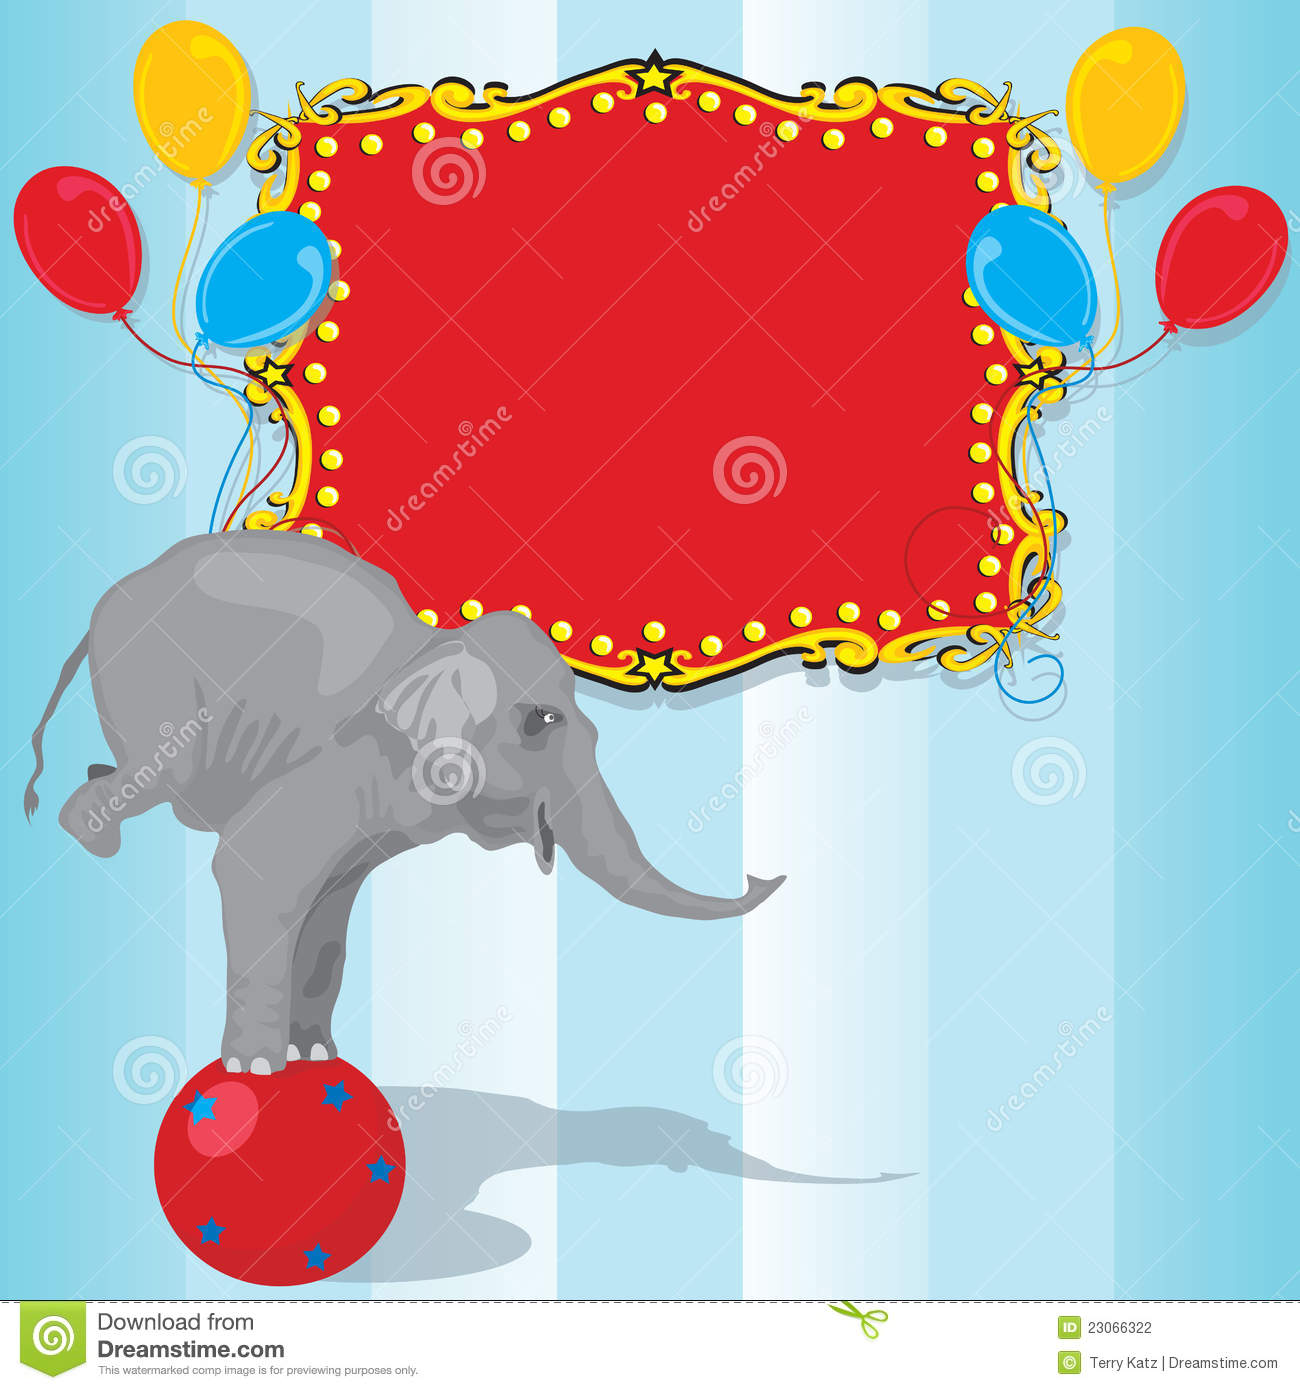 Circus Elephant Birthday Party Invitation Card Stock Photography - Image: 23066322